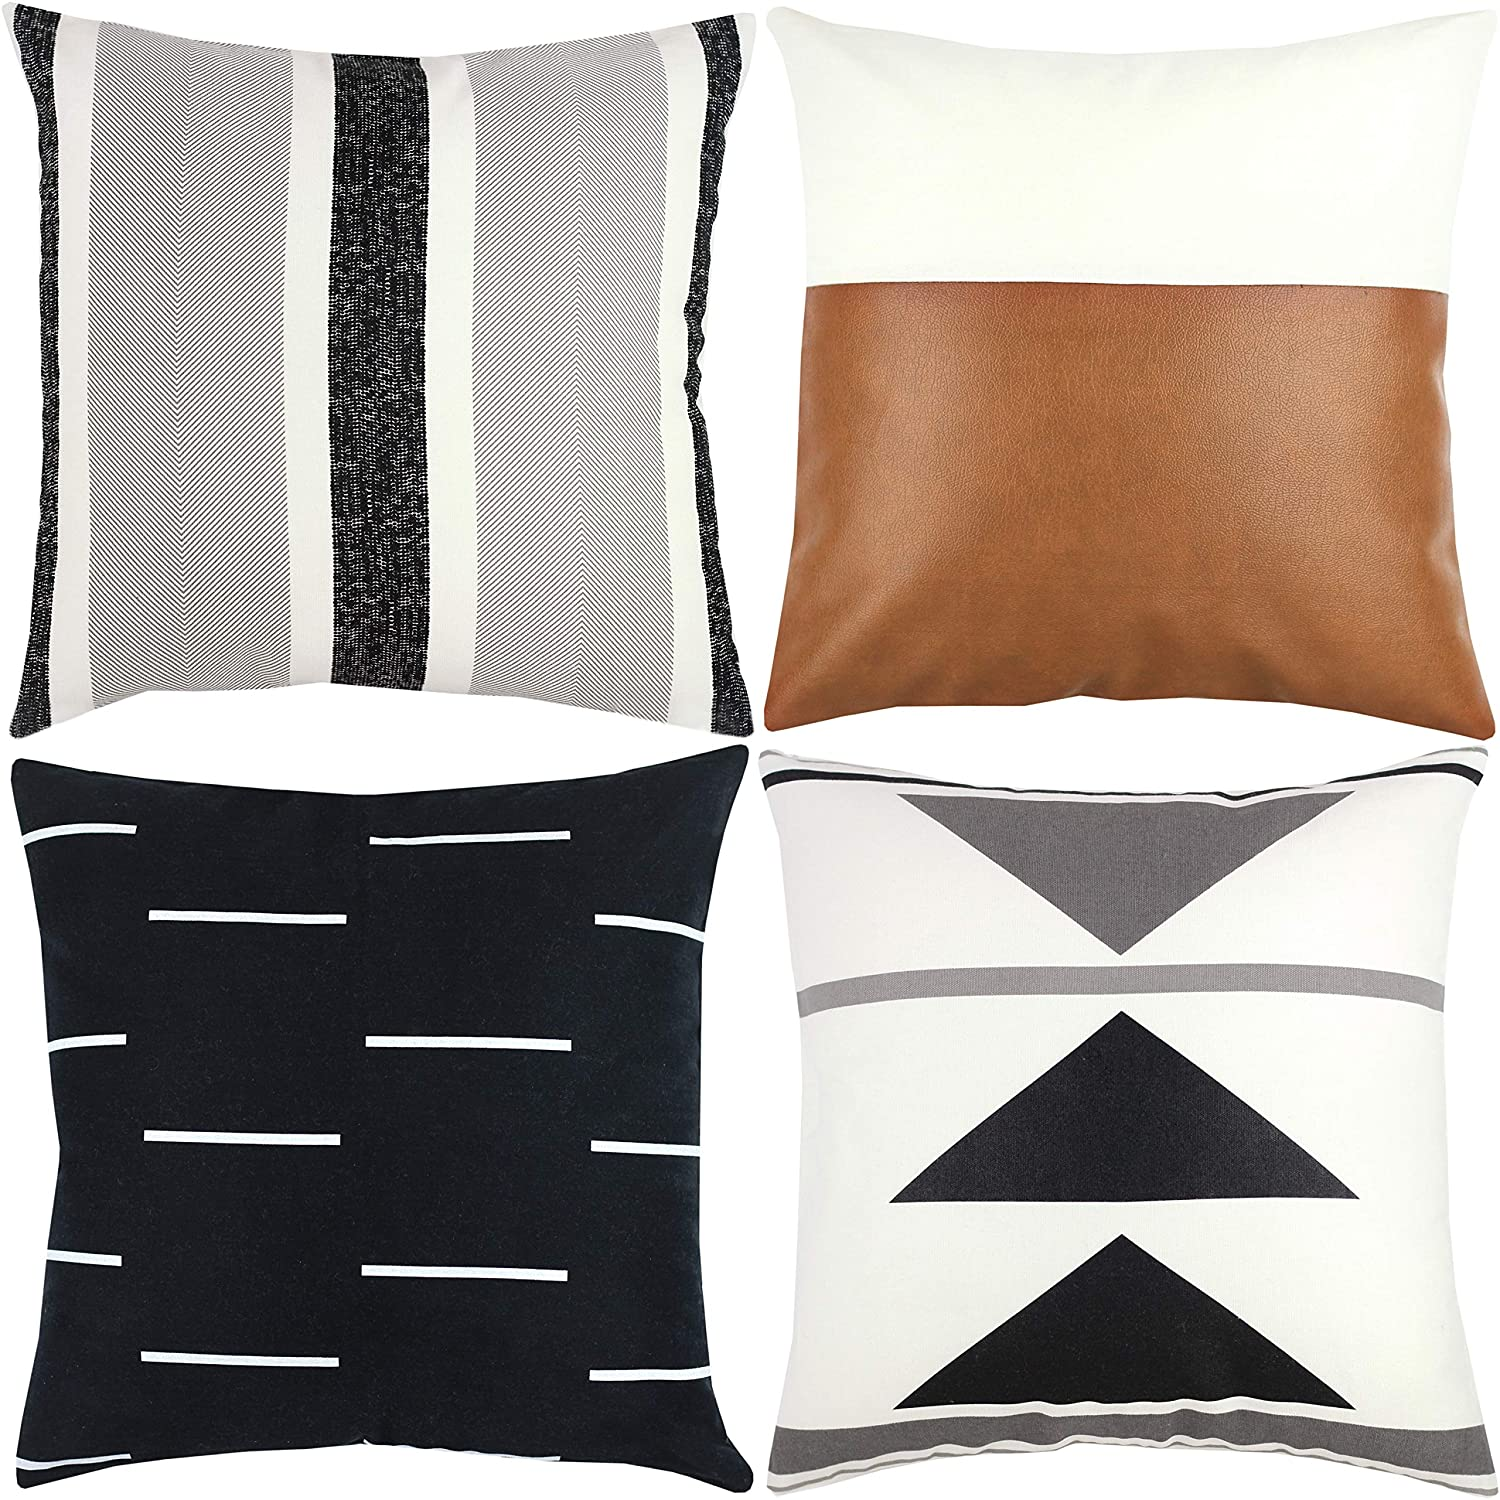 Image result for Decorative Throw Pillows""